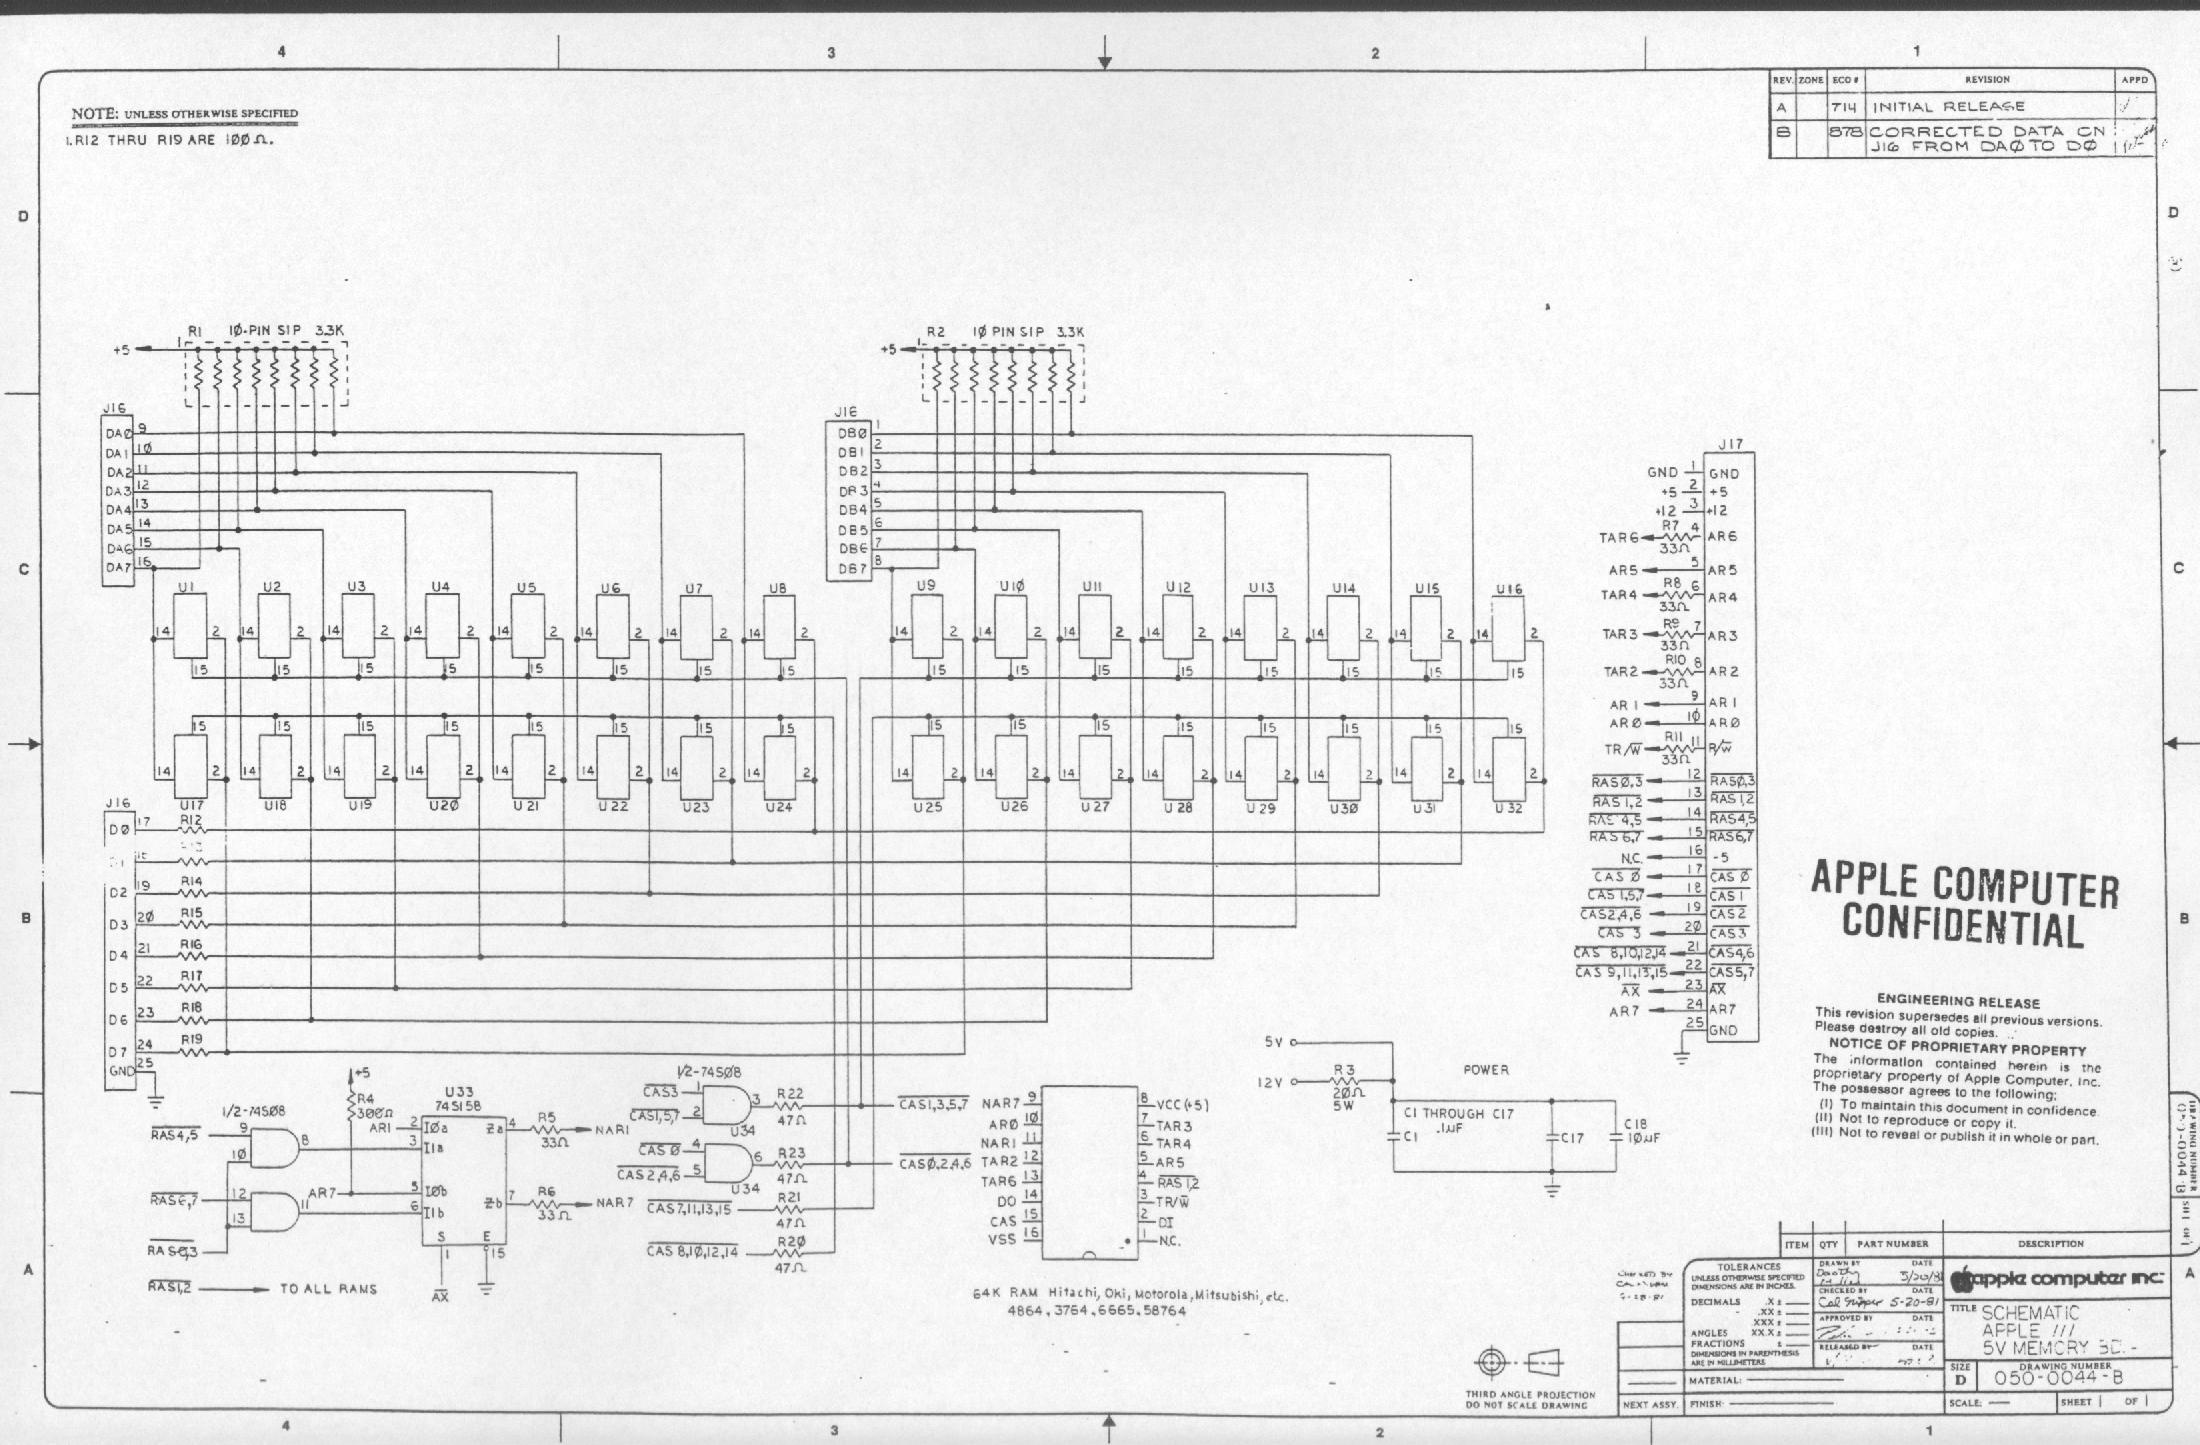 Ac inverter circuit diagram on iphone 5 logic board schematic apple iii schematic diagrams rh apple3 org fandeluxe